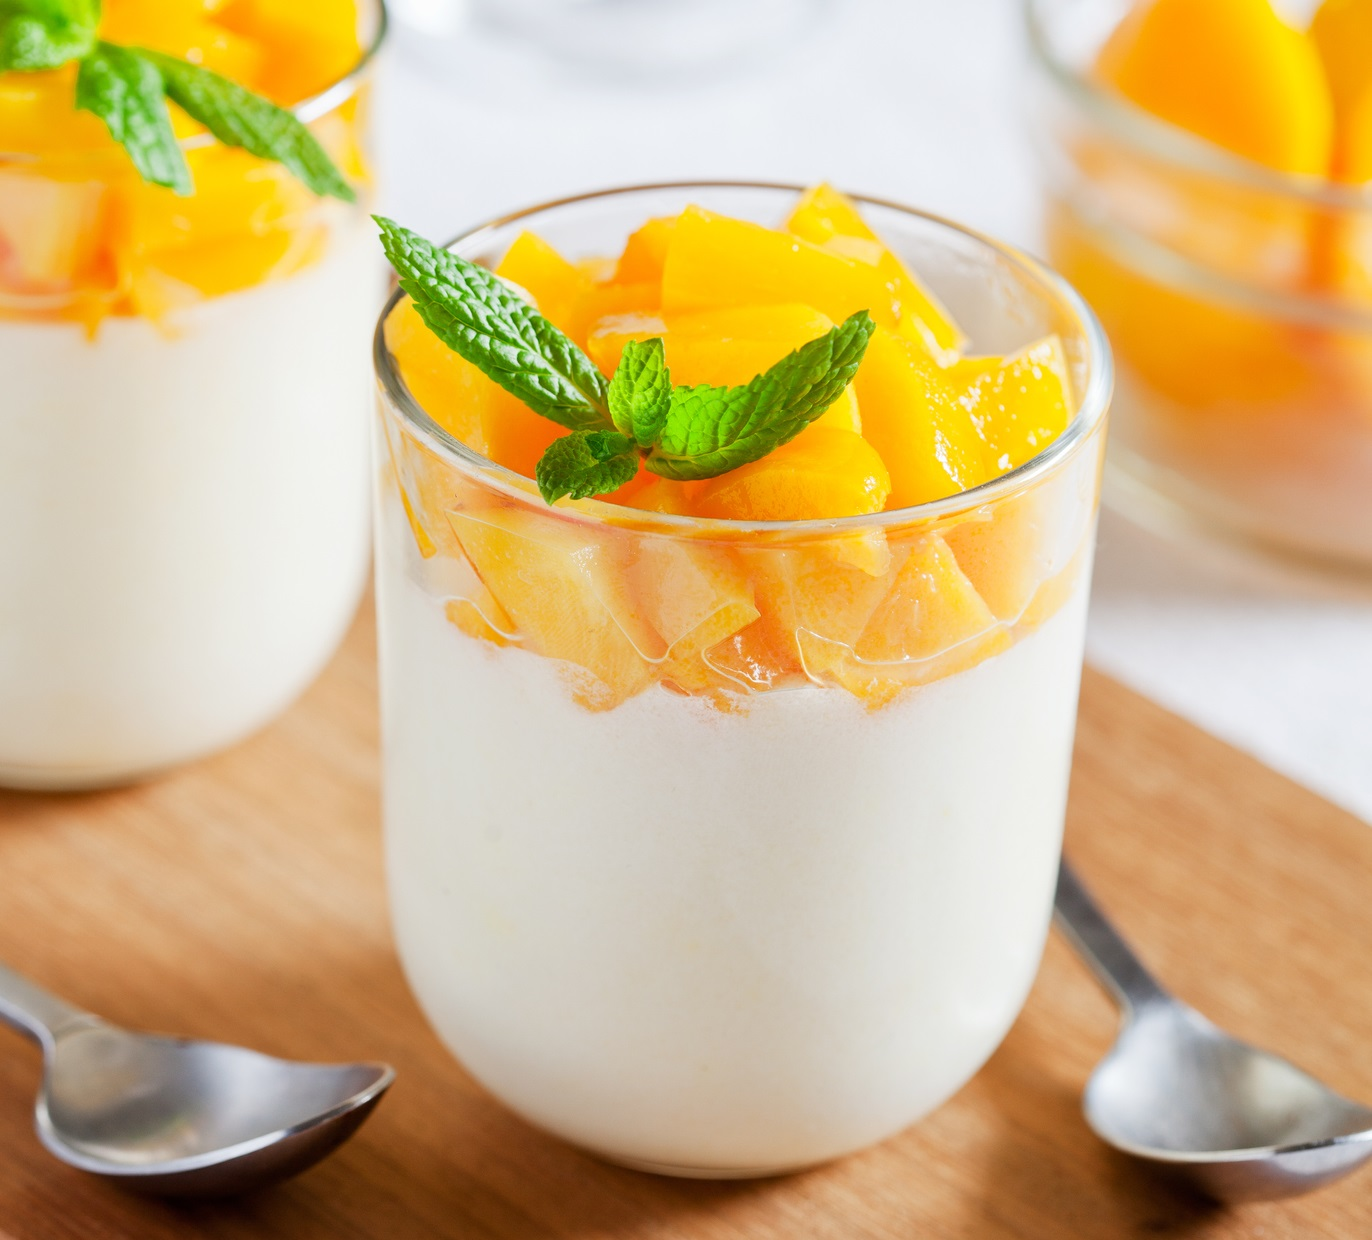 Yogurt topped with mangoes.